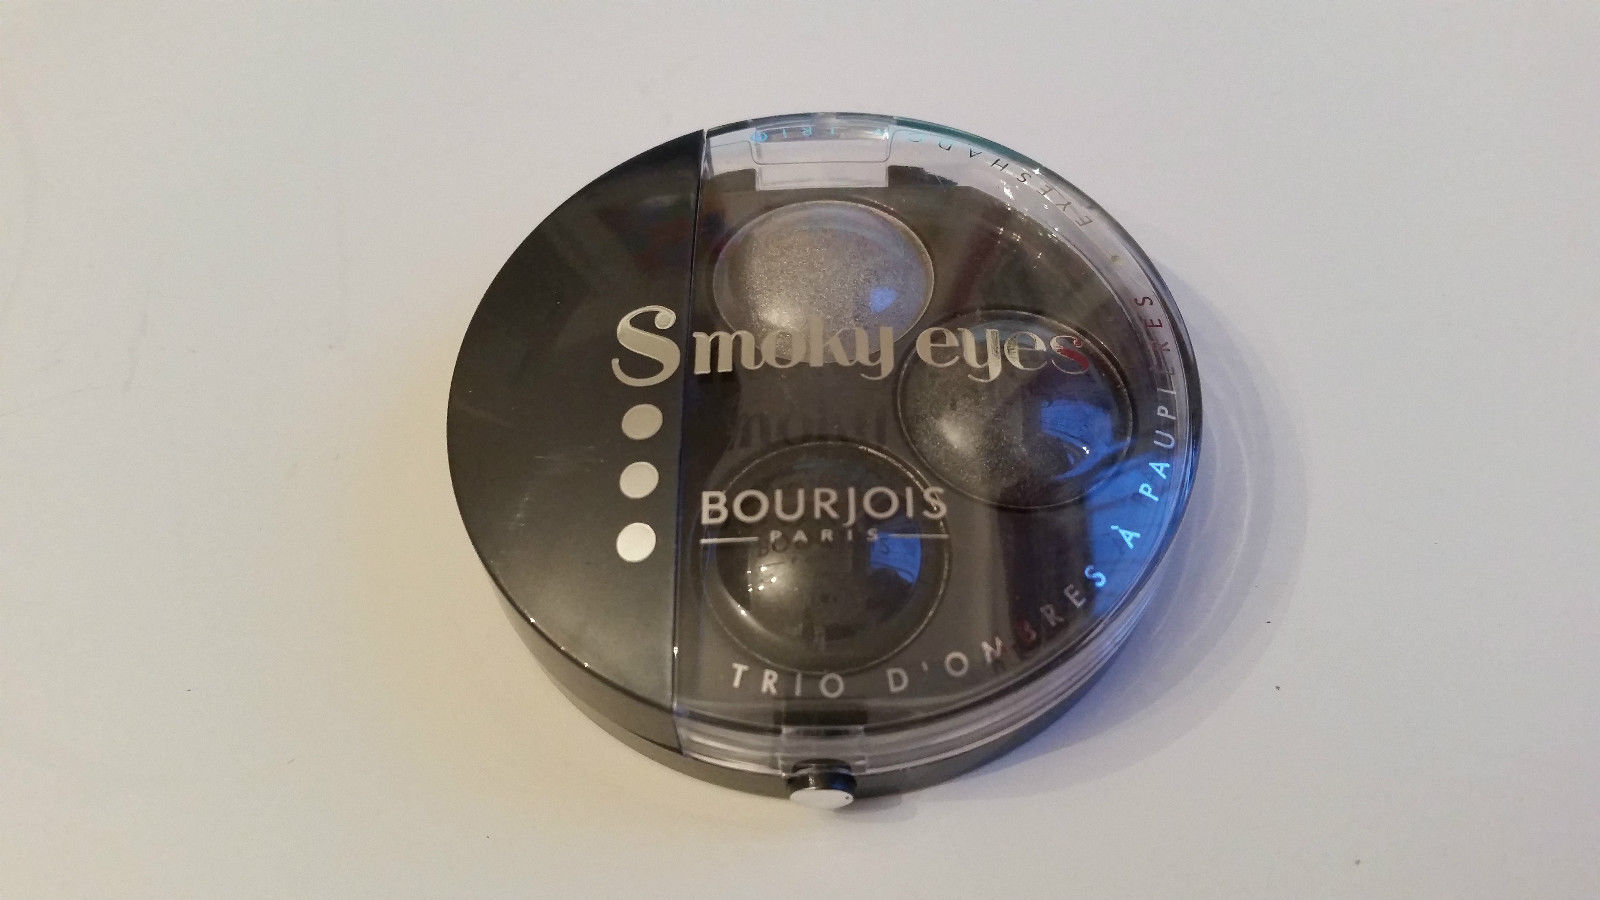 BOURJOIS SMOKY EYES TRIO EYESHADOW - GRIS DANDY